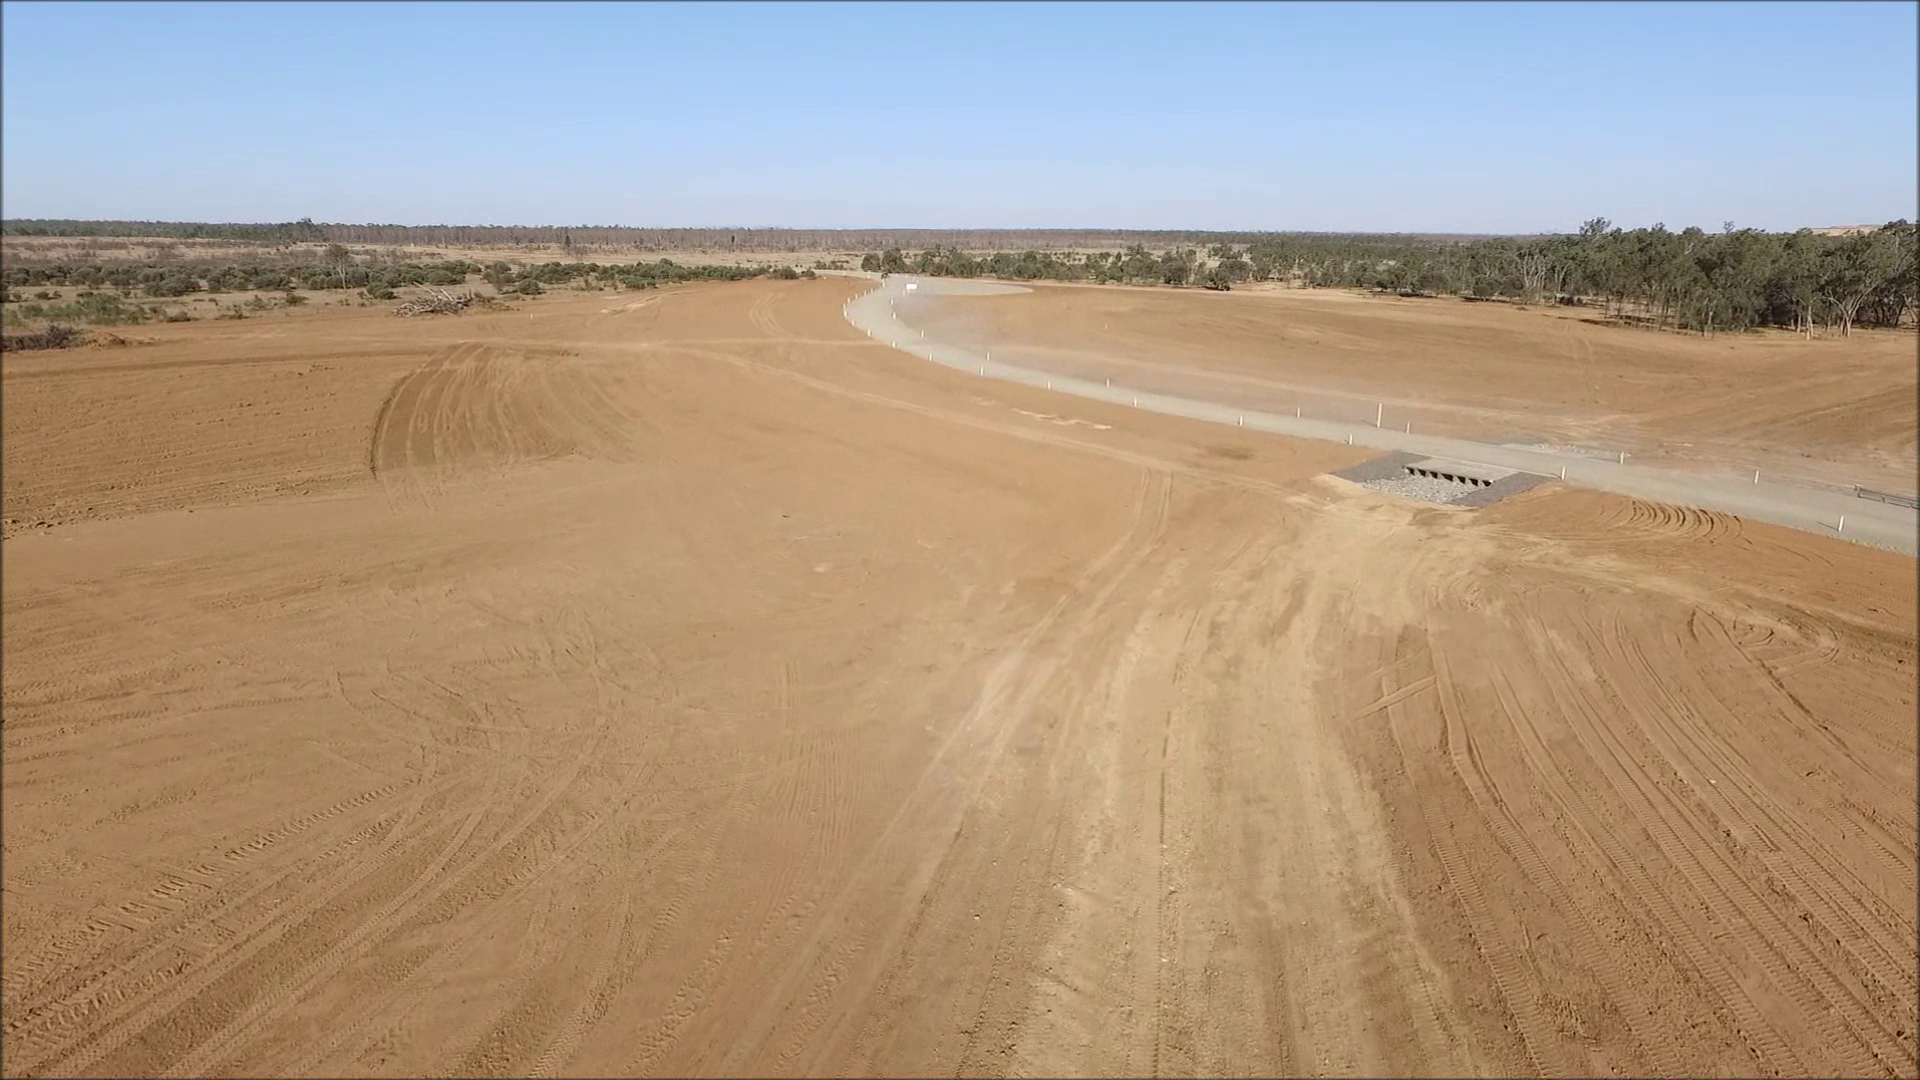 Foxleigh Mine - Cockatoo Creek Diversion Levee Pavement Construction